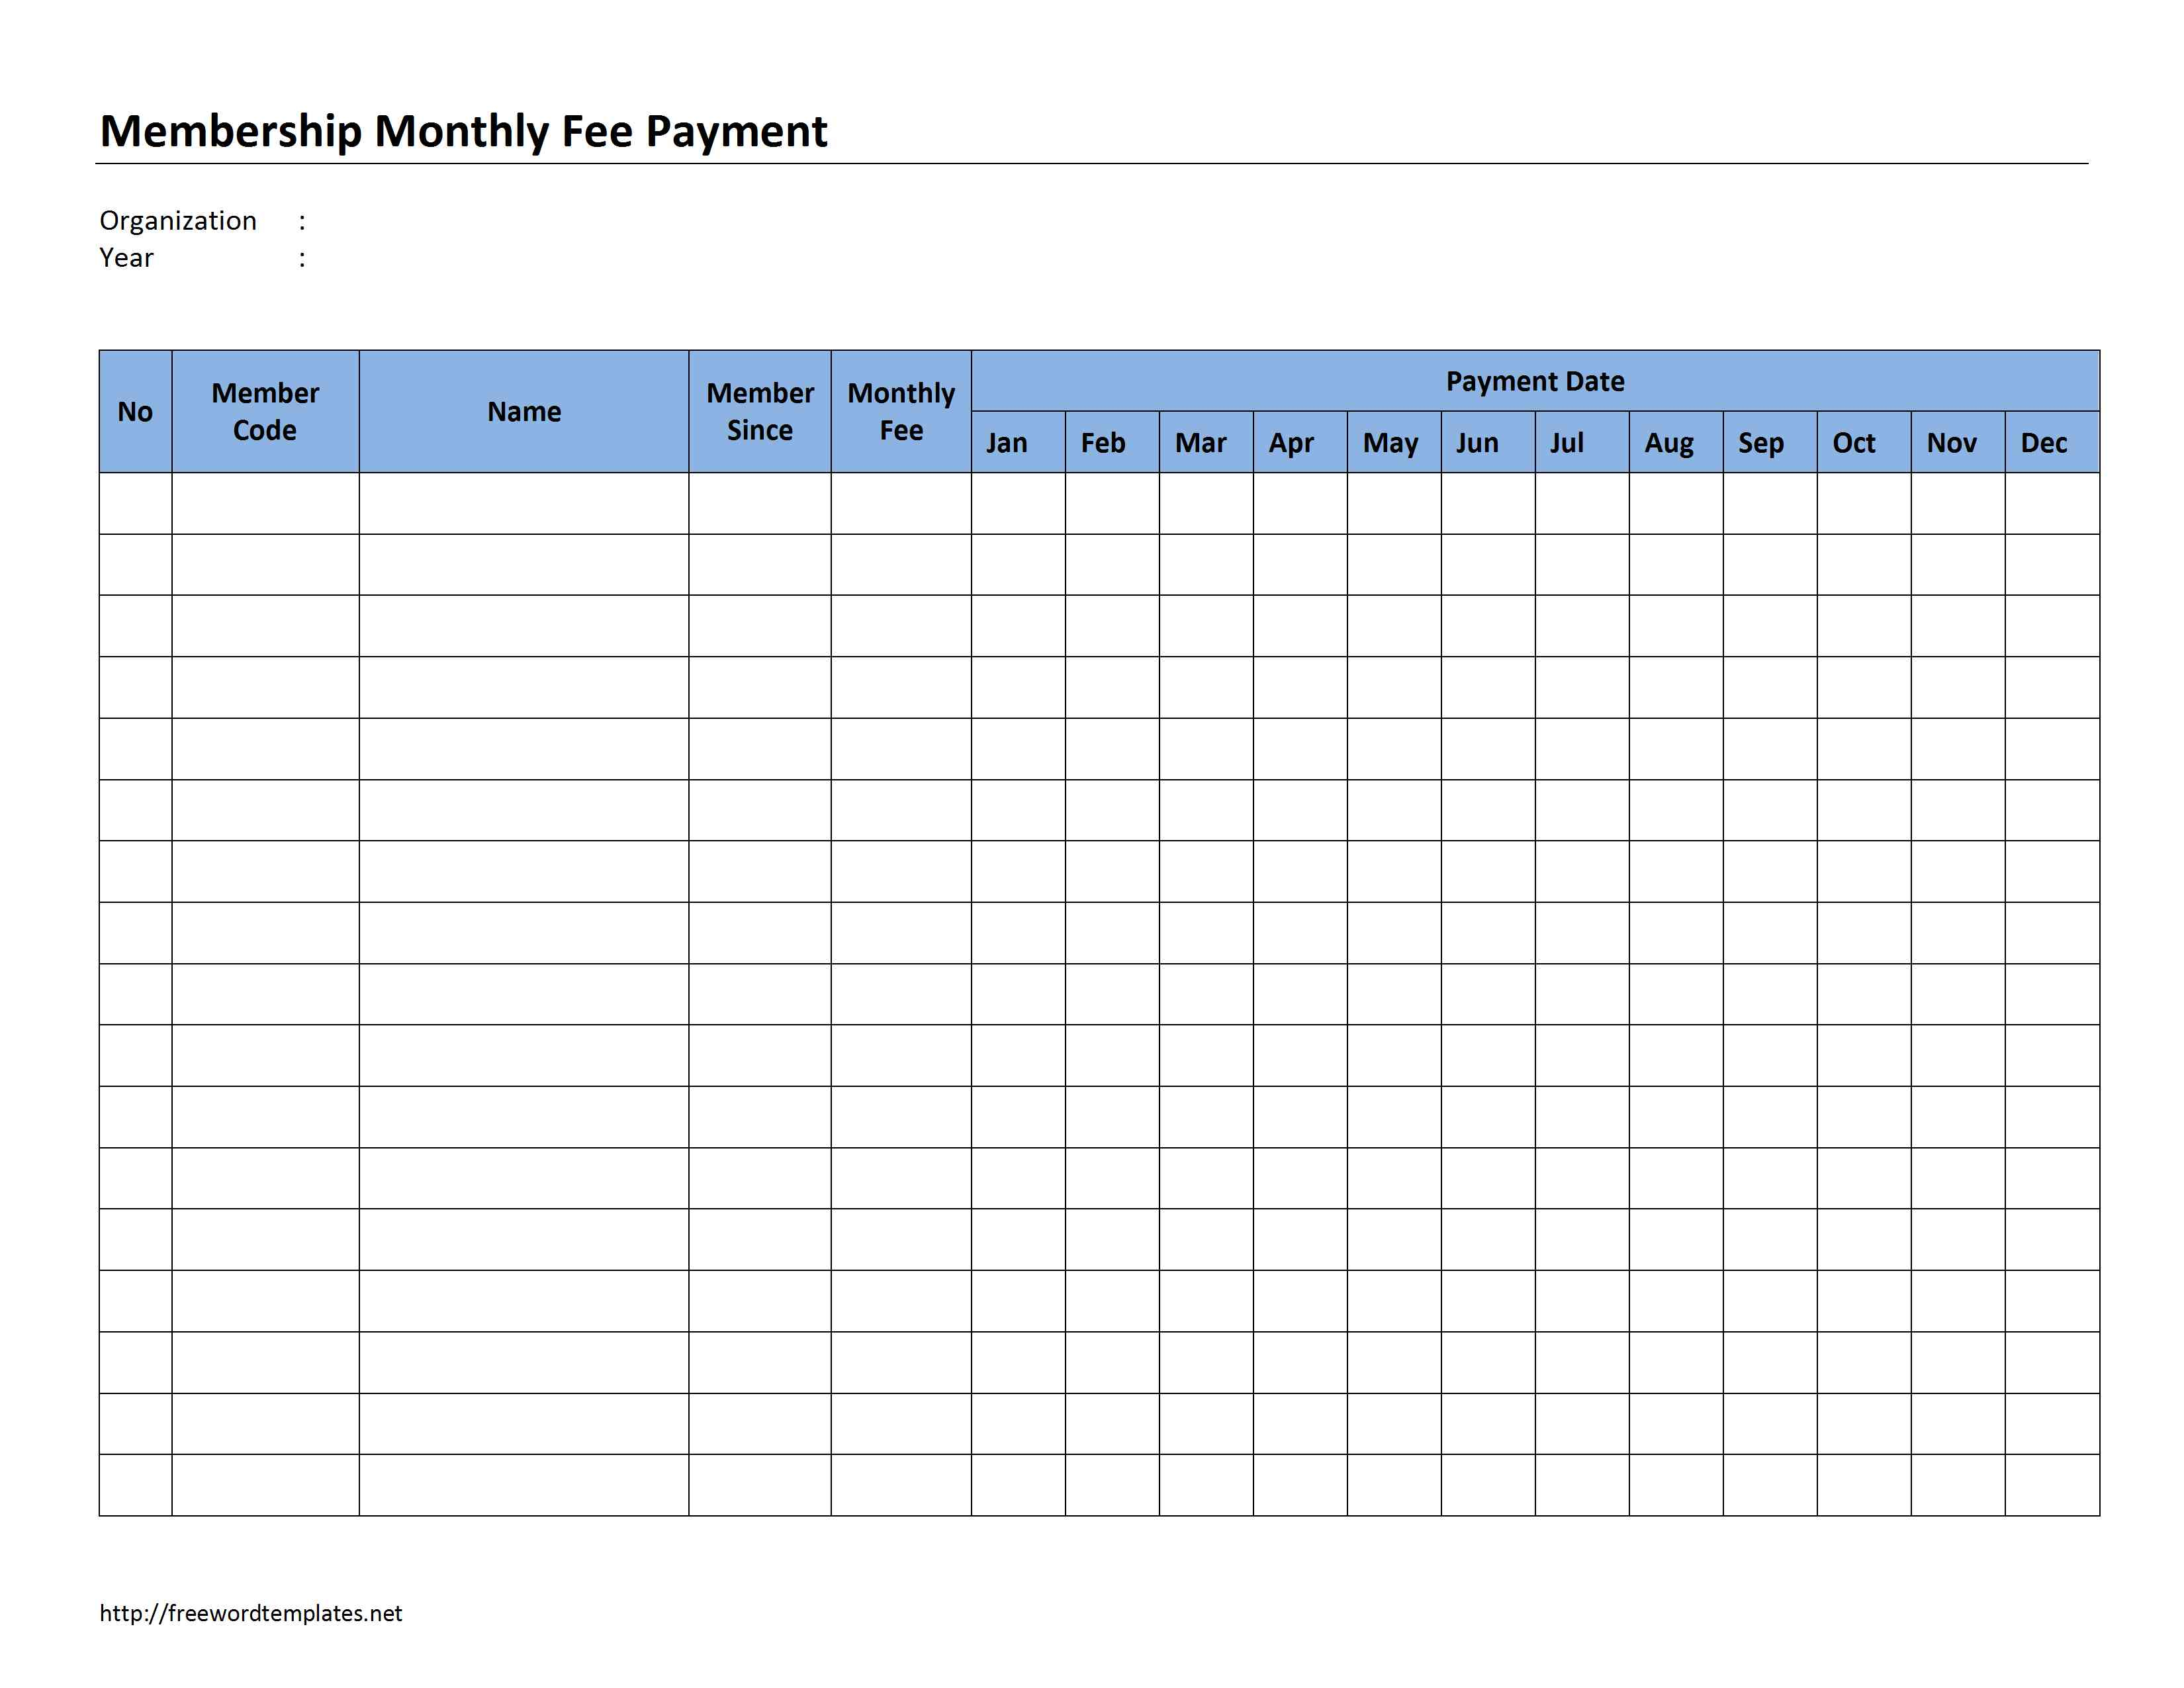 Membership Monthly Fee Payment for Blank Copy Of Monthly Sign Up Sheet Calendar Schedule